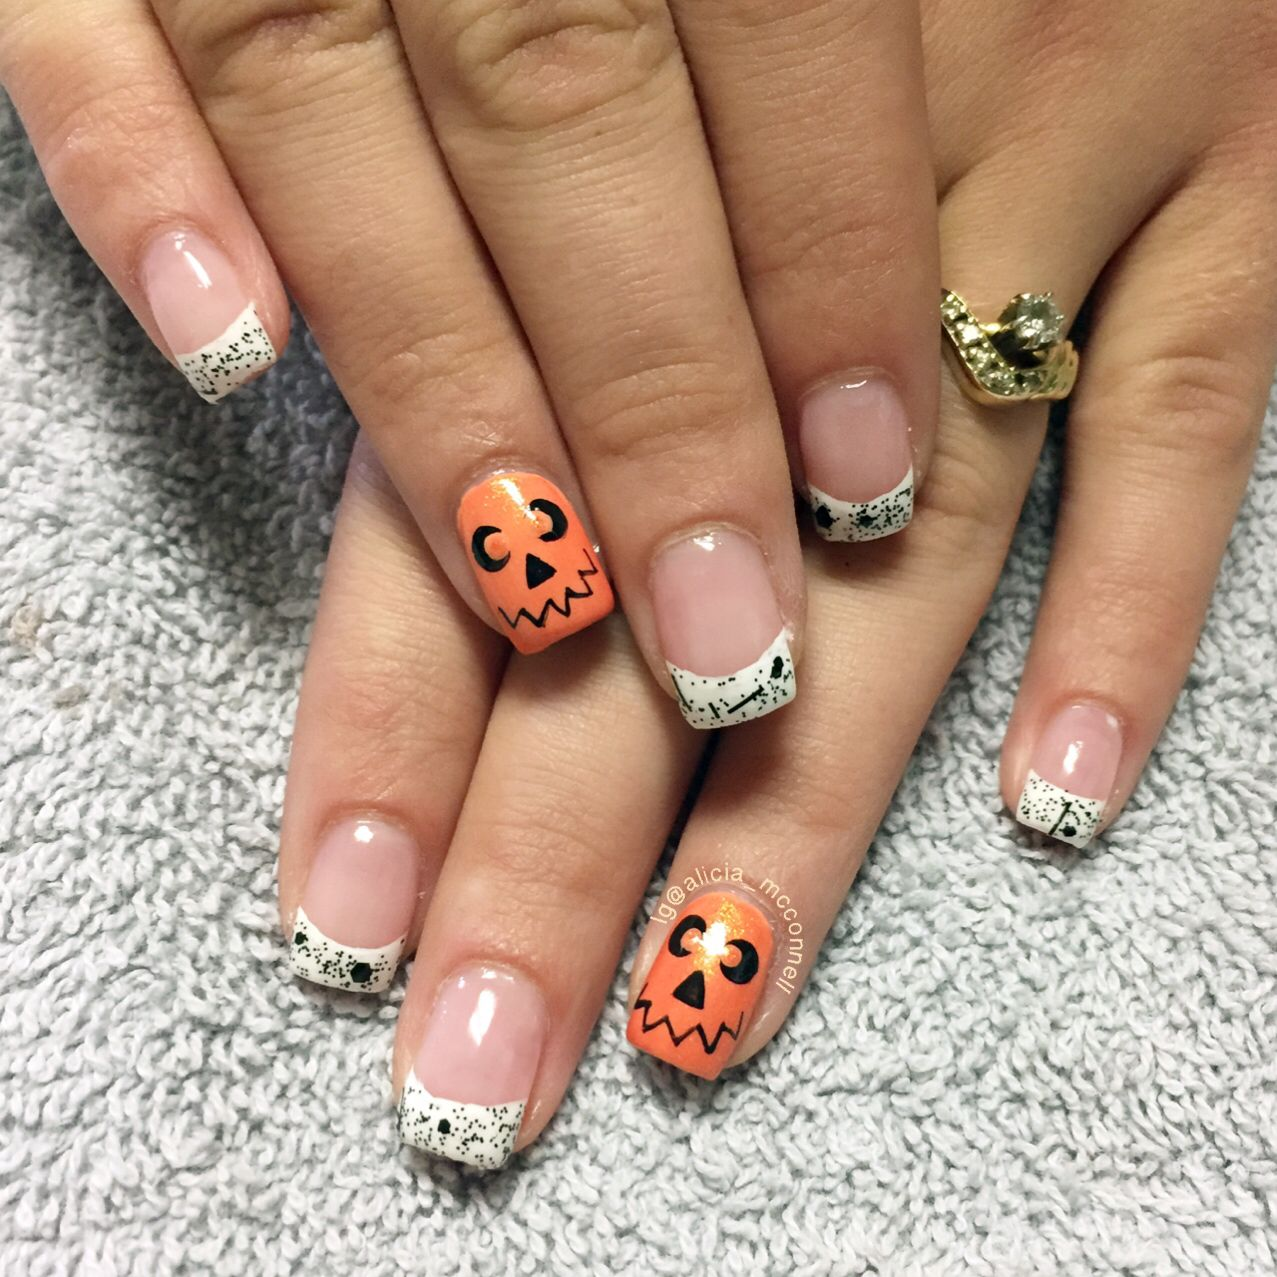 French tips and jack o\'lanterns Halloween nails | Nails by Alicia ...